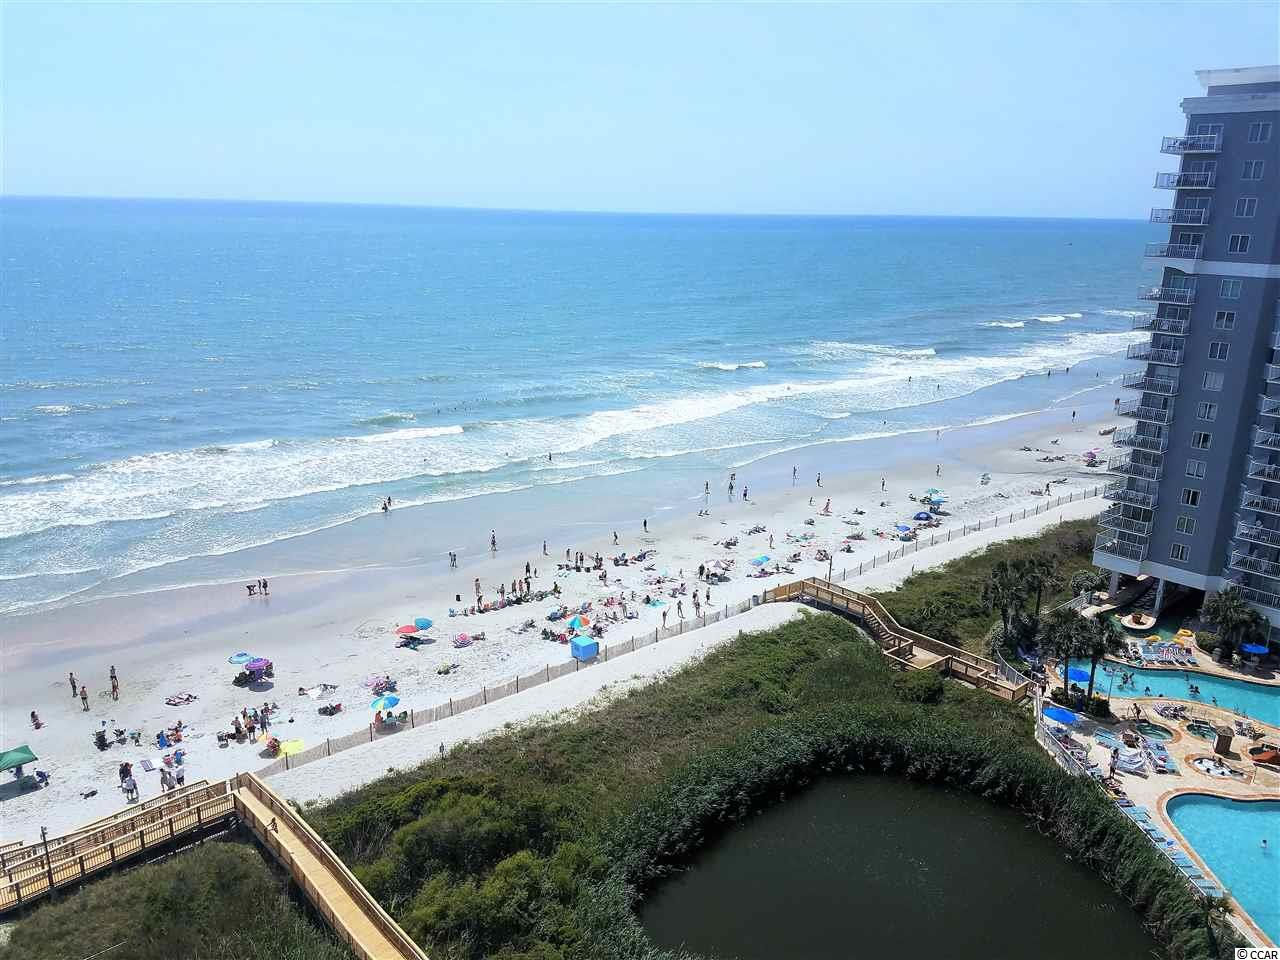 Contact your real estate agent to view this  Seawatch North Tower condo for sale